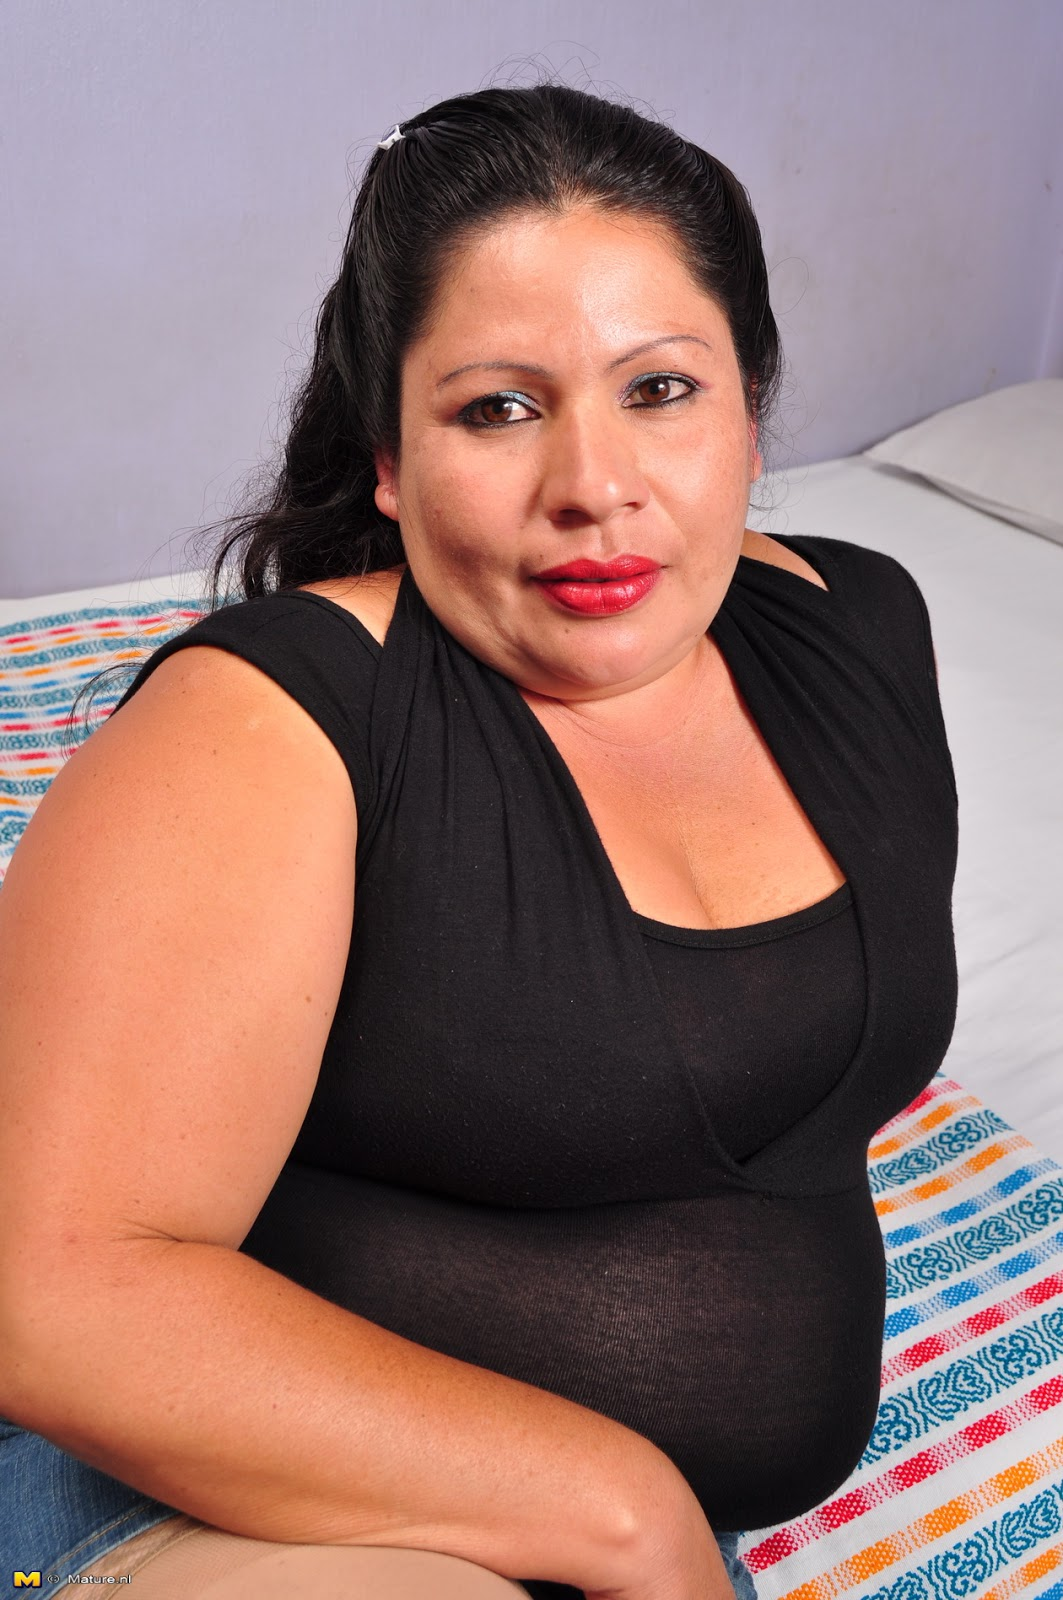 Black Fat Women Porn Pictures